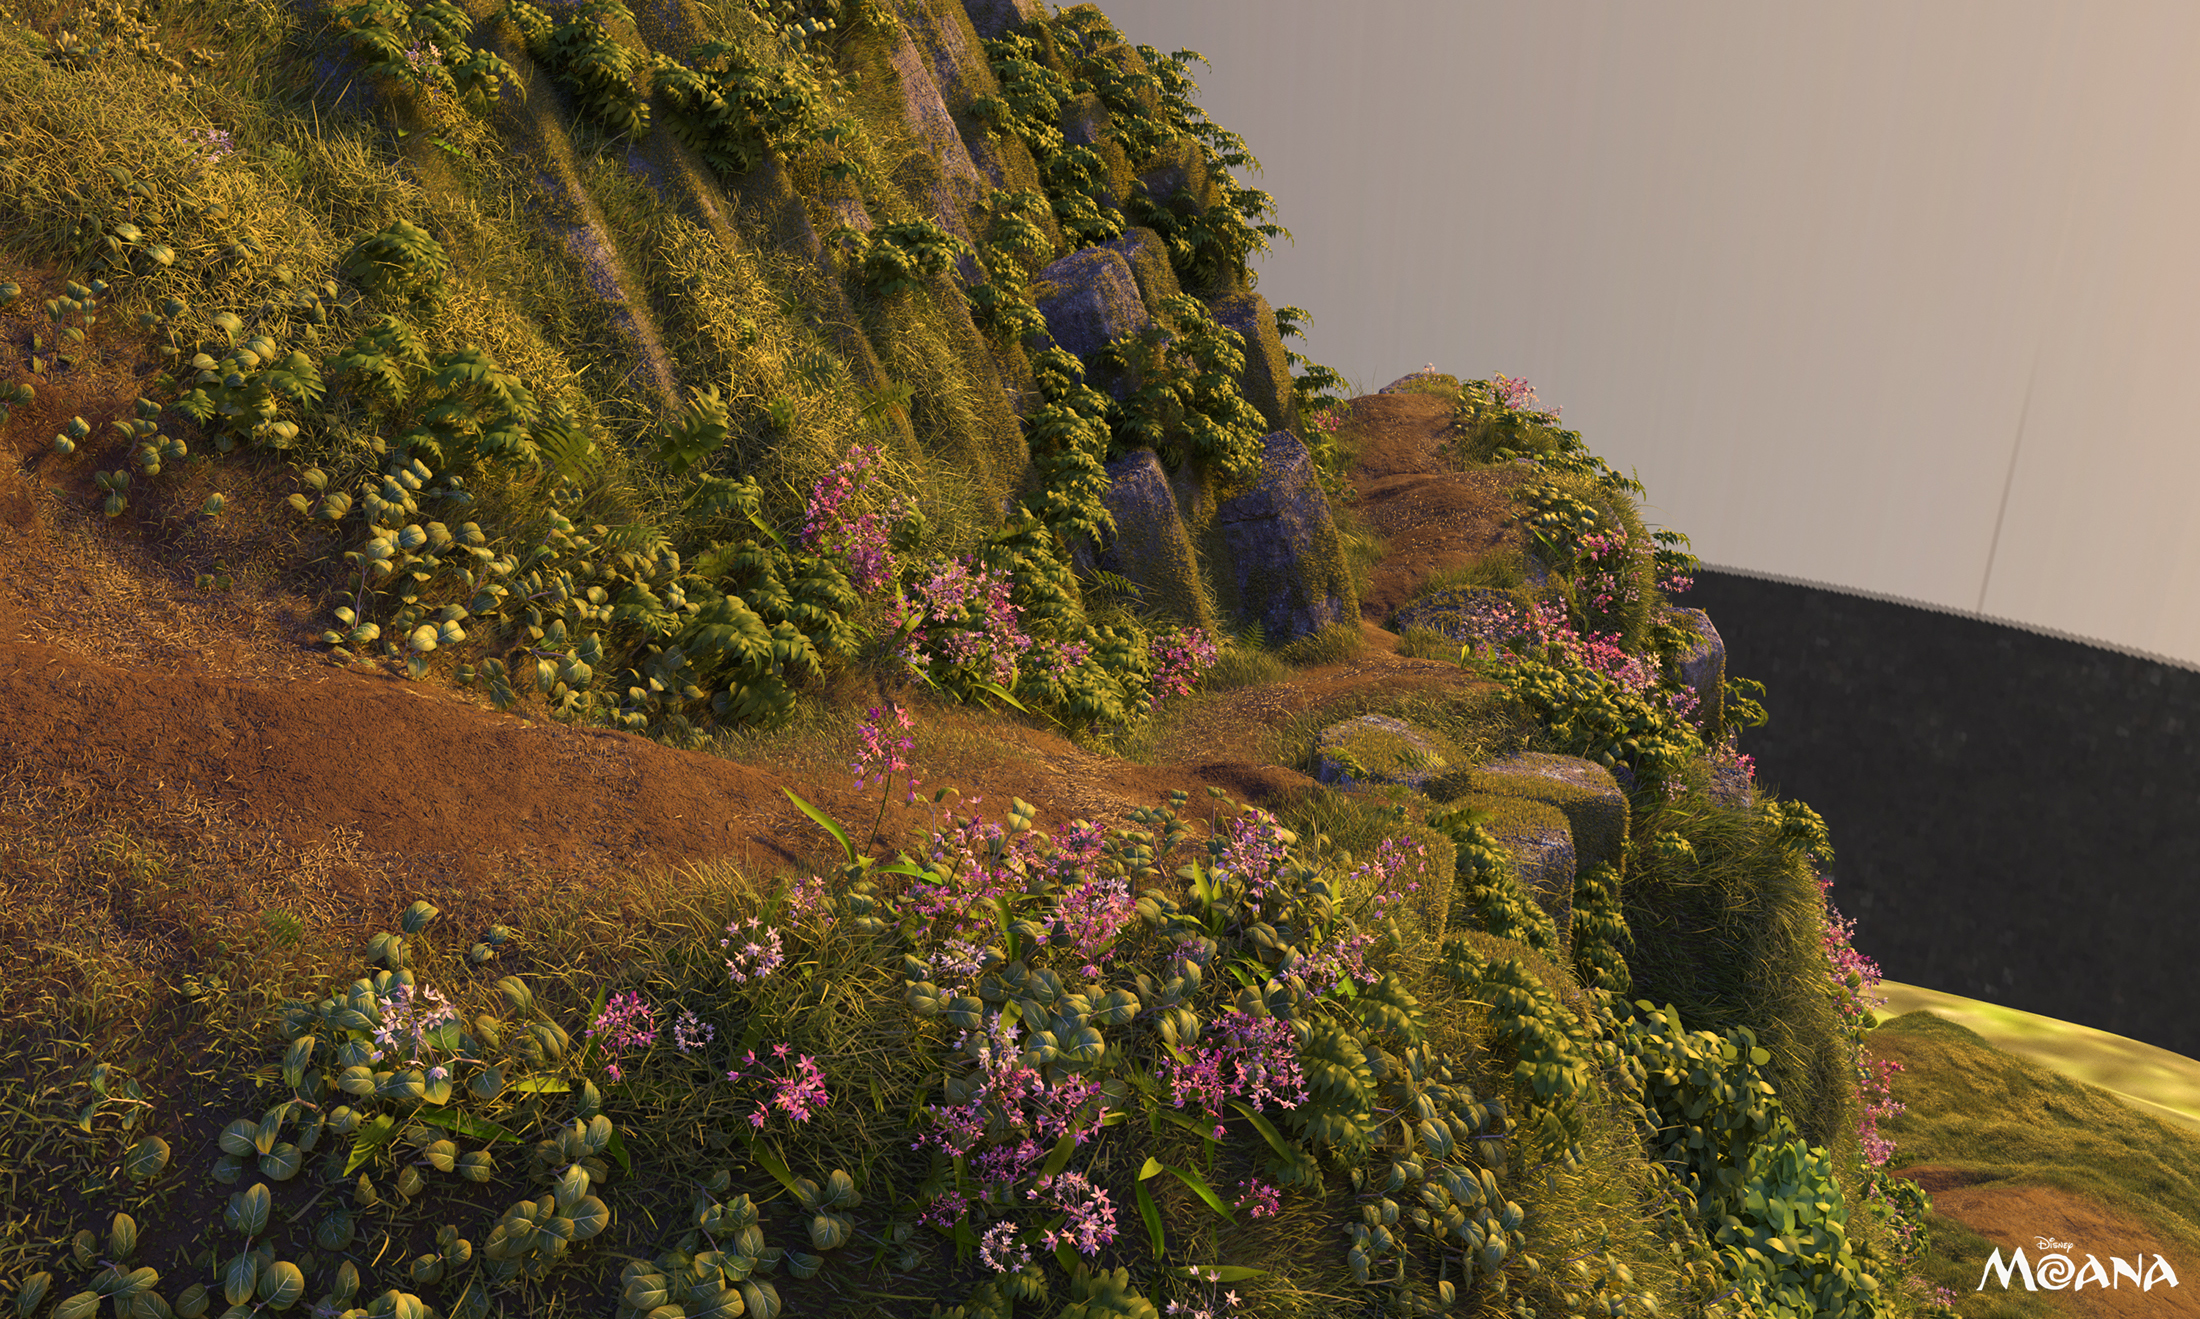 Look development Render - all vegetation done In look dev with xgen